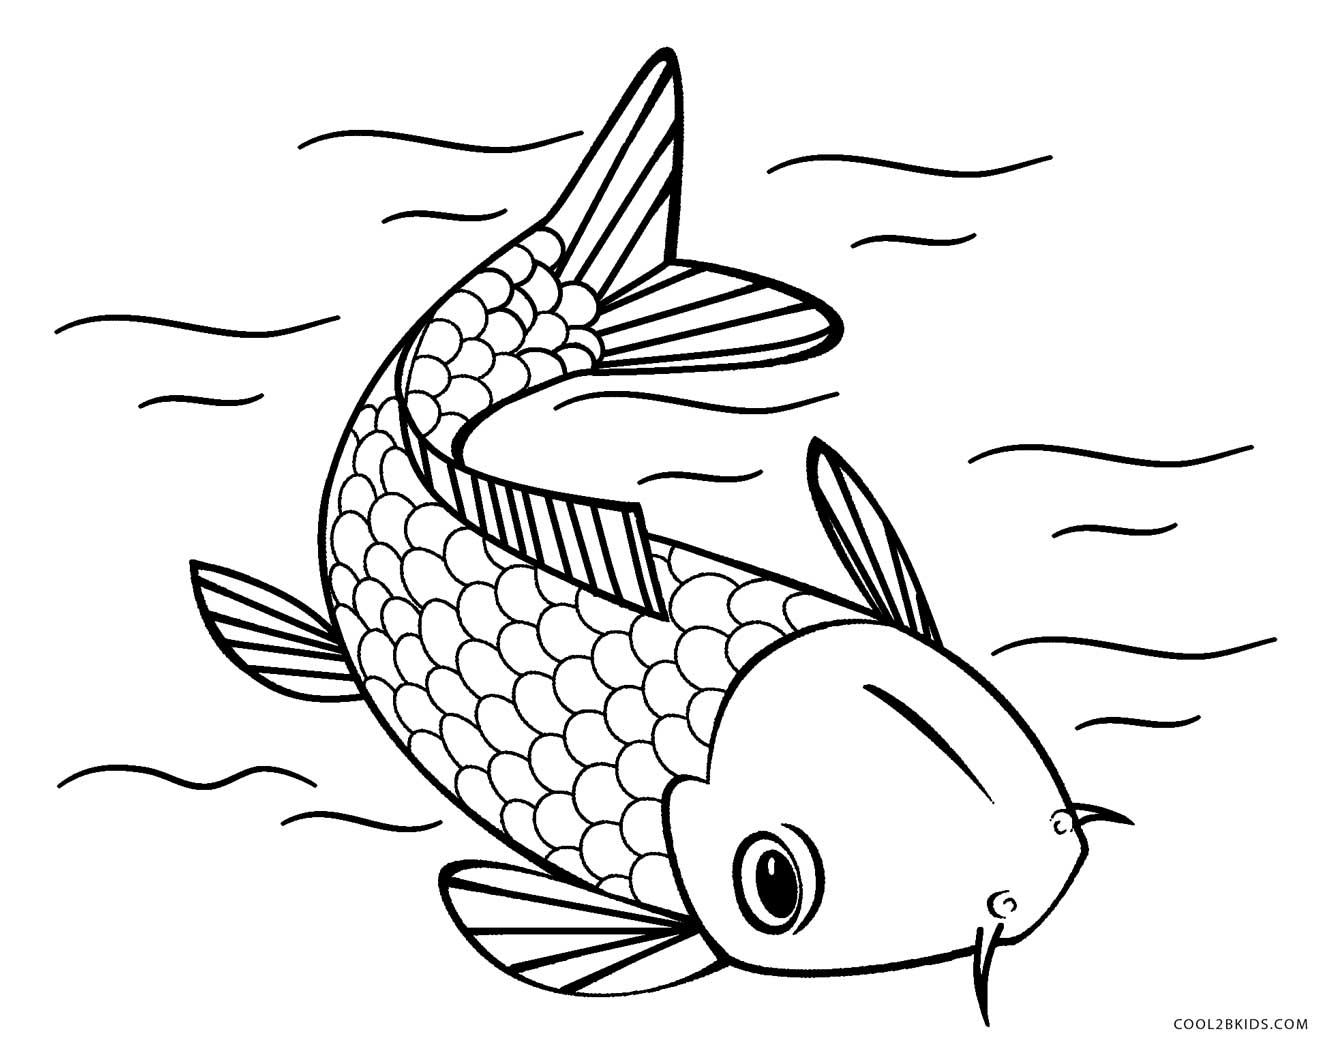 fish color pages fish coloring pages color fish pages